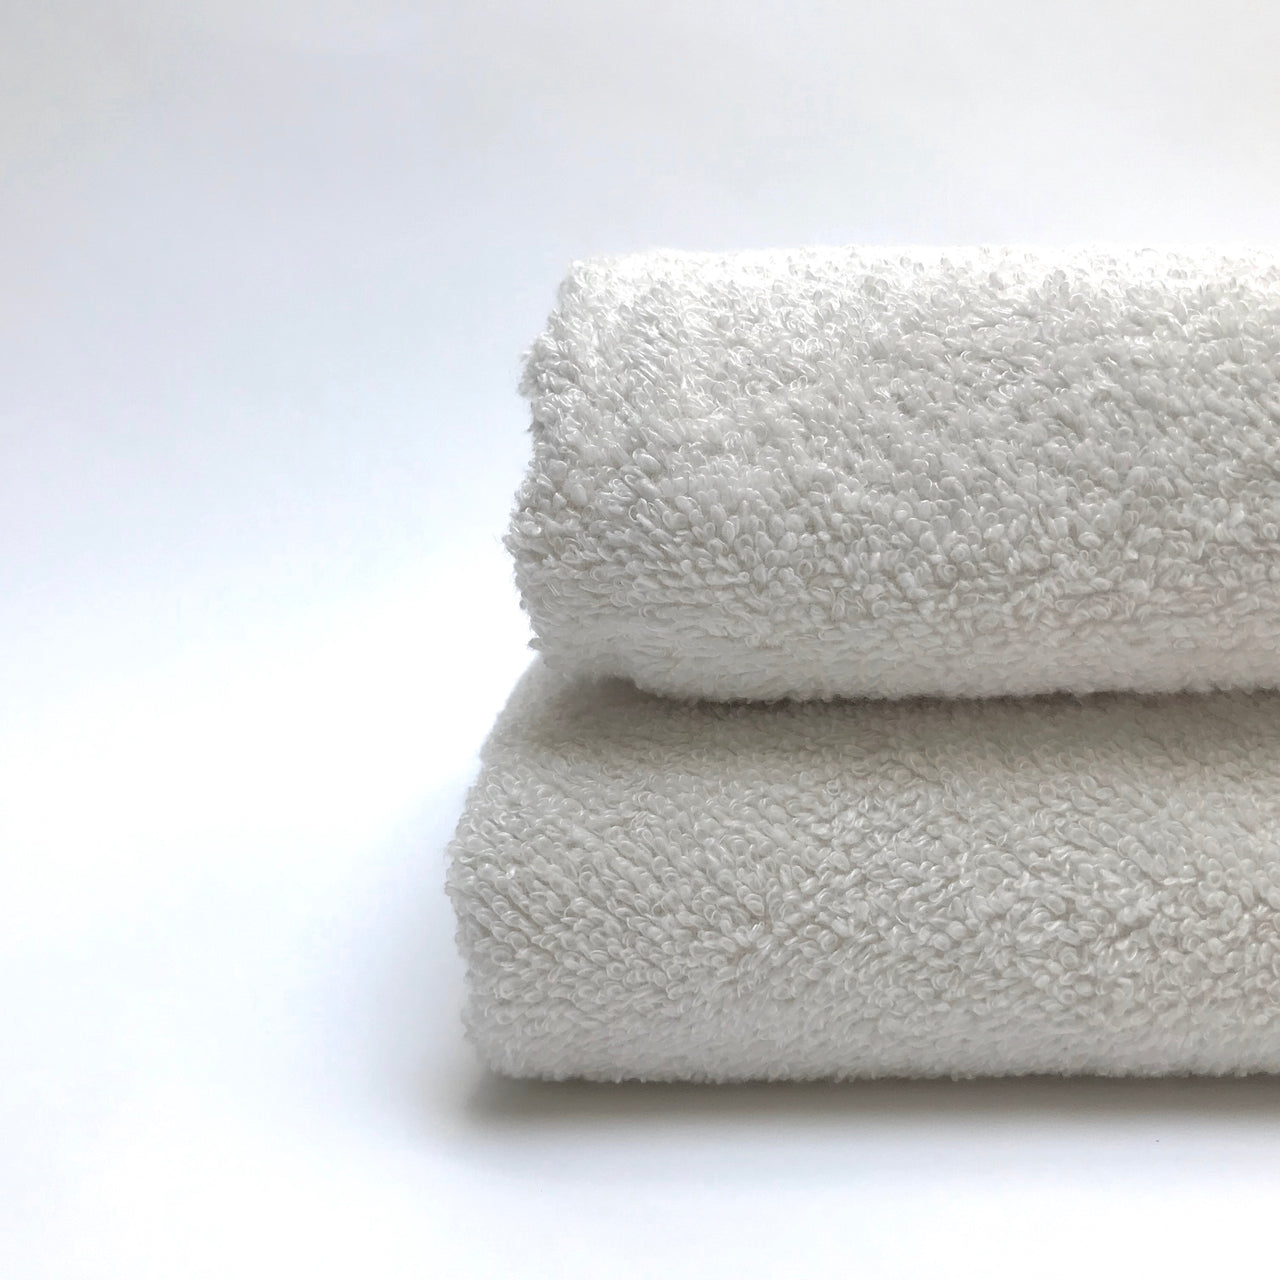 linen terry towels- full unbleached